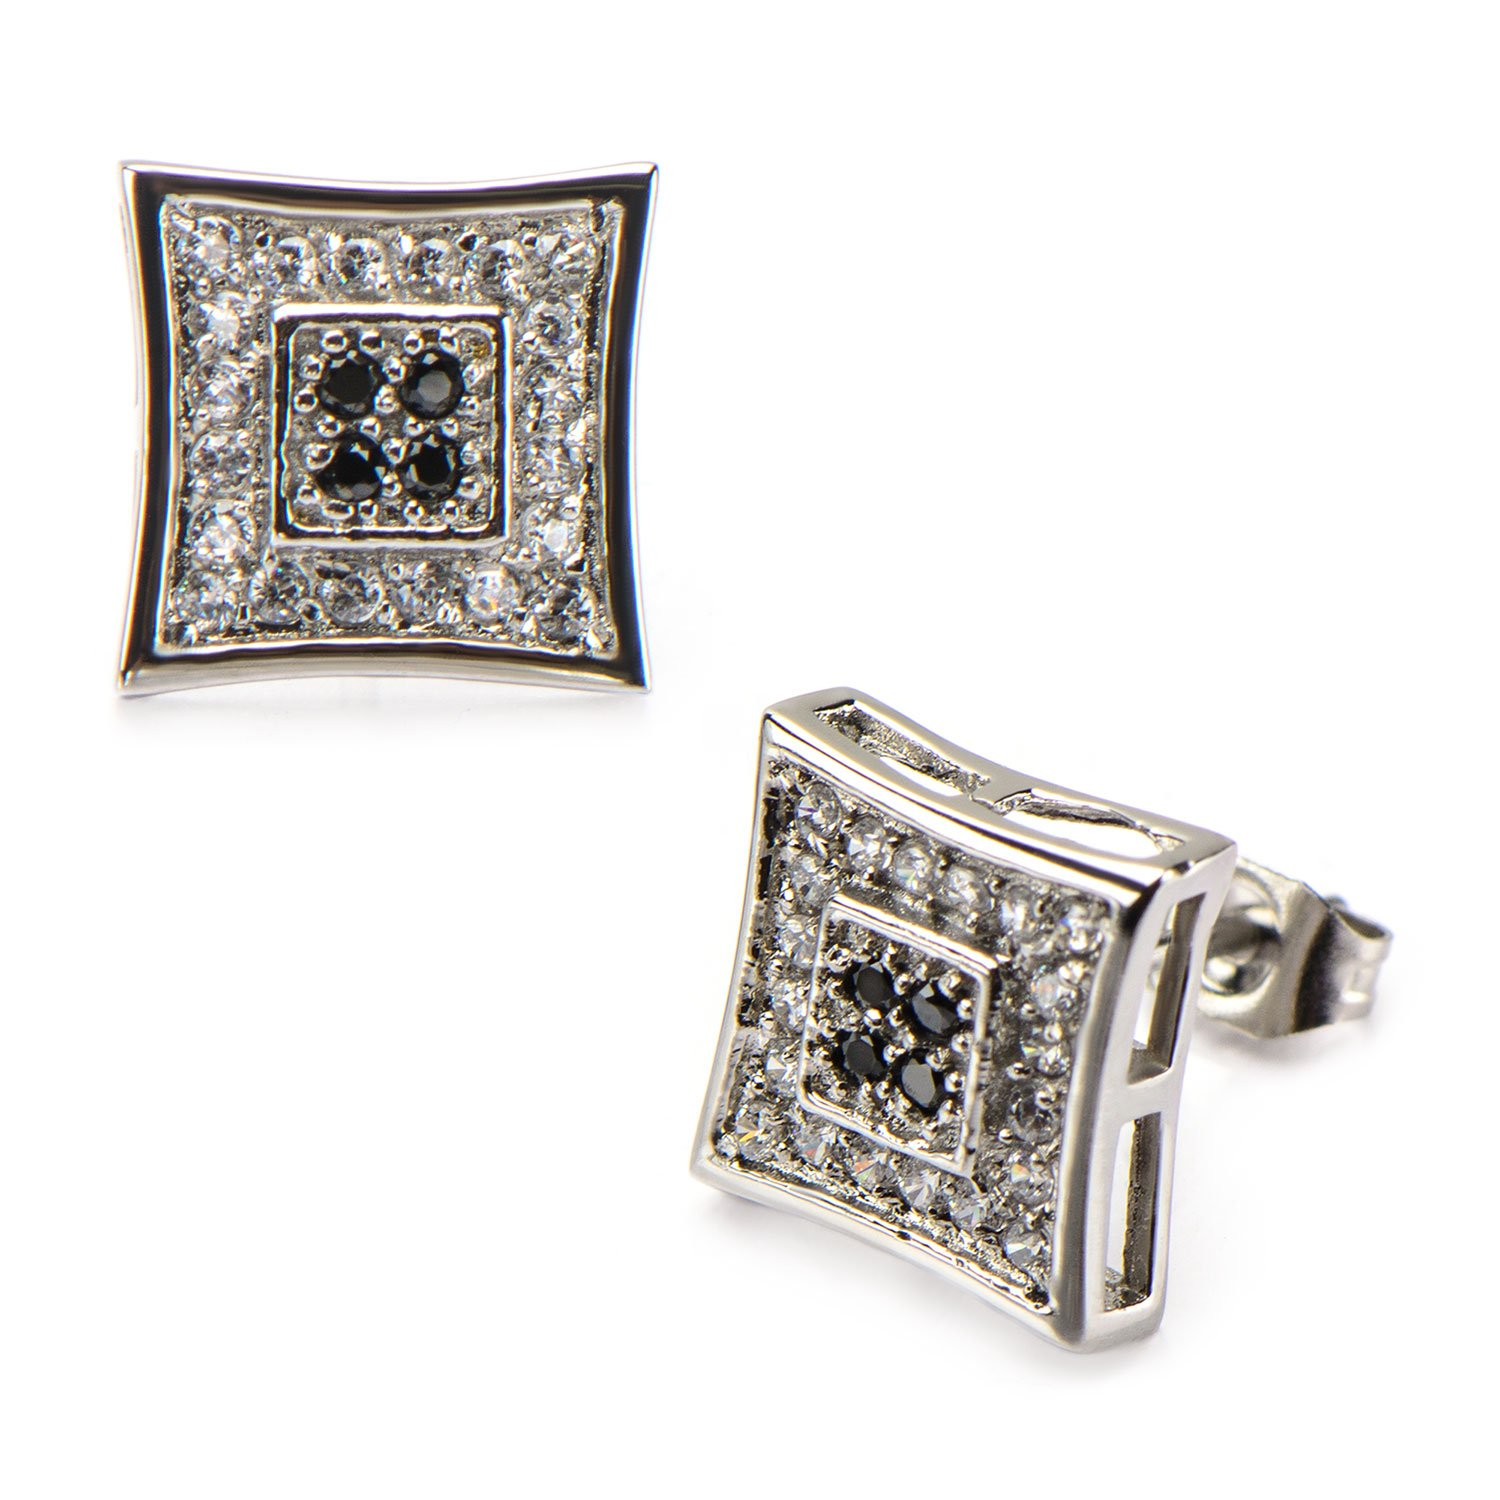 Stainless Steel With Clear And Black CZ Stones In Pave Set Square Kite Hip Hop Studs Earrings